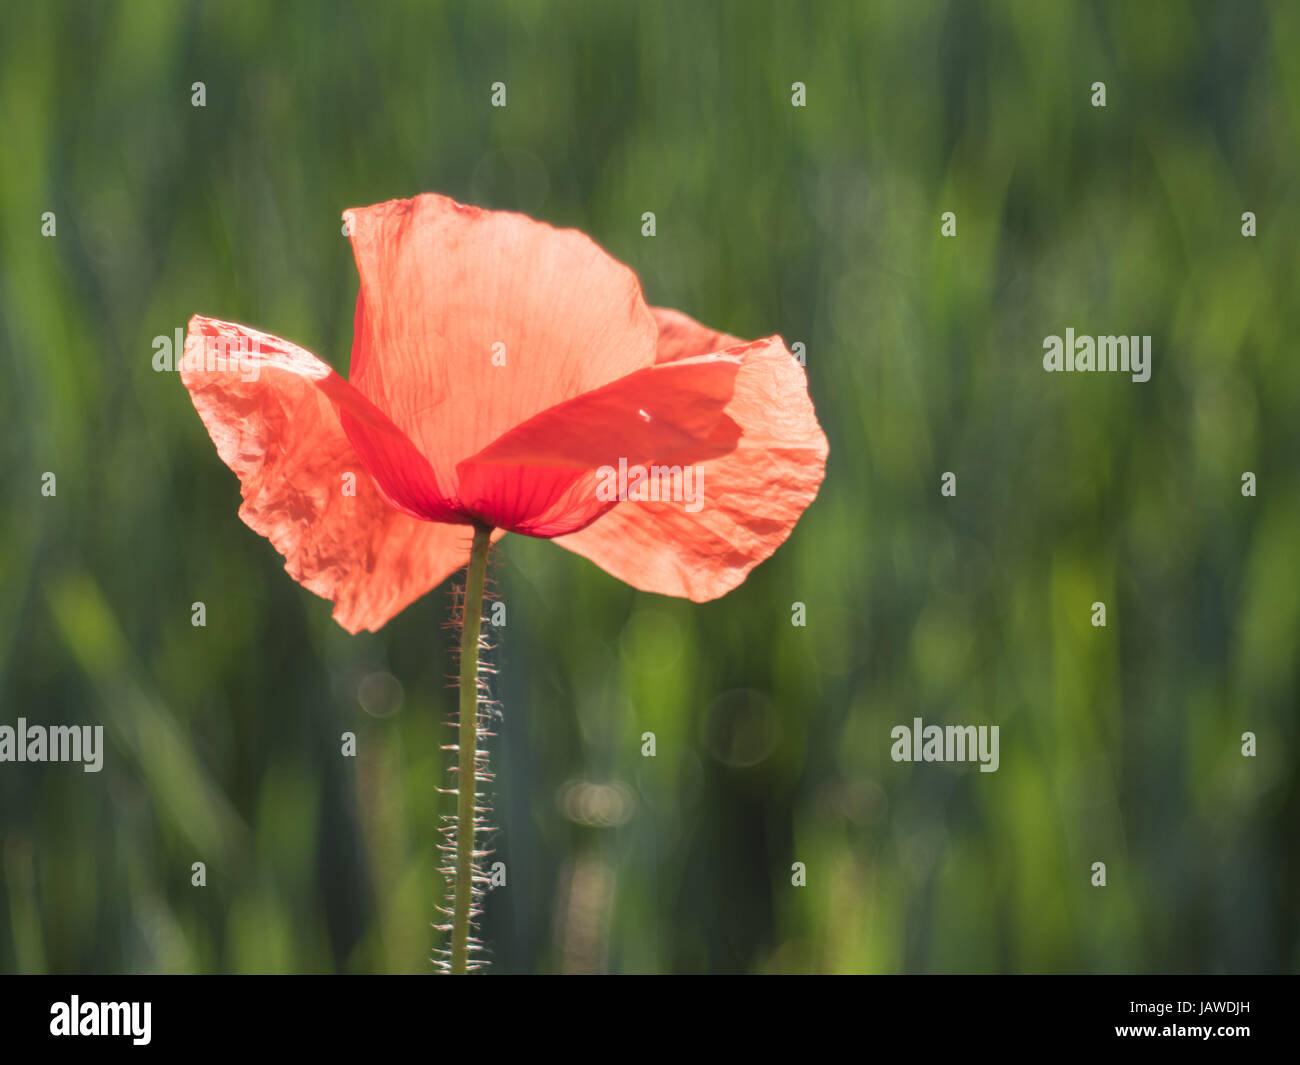 red poppy before a cereal field at noon - Stock Image